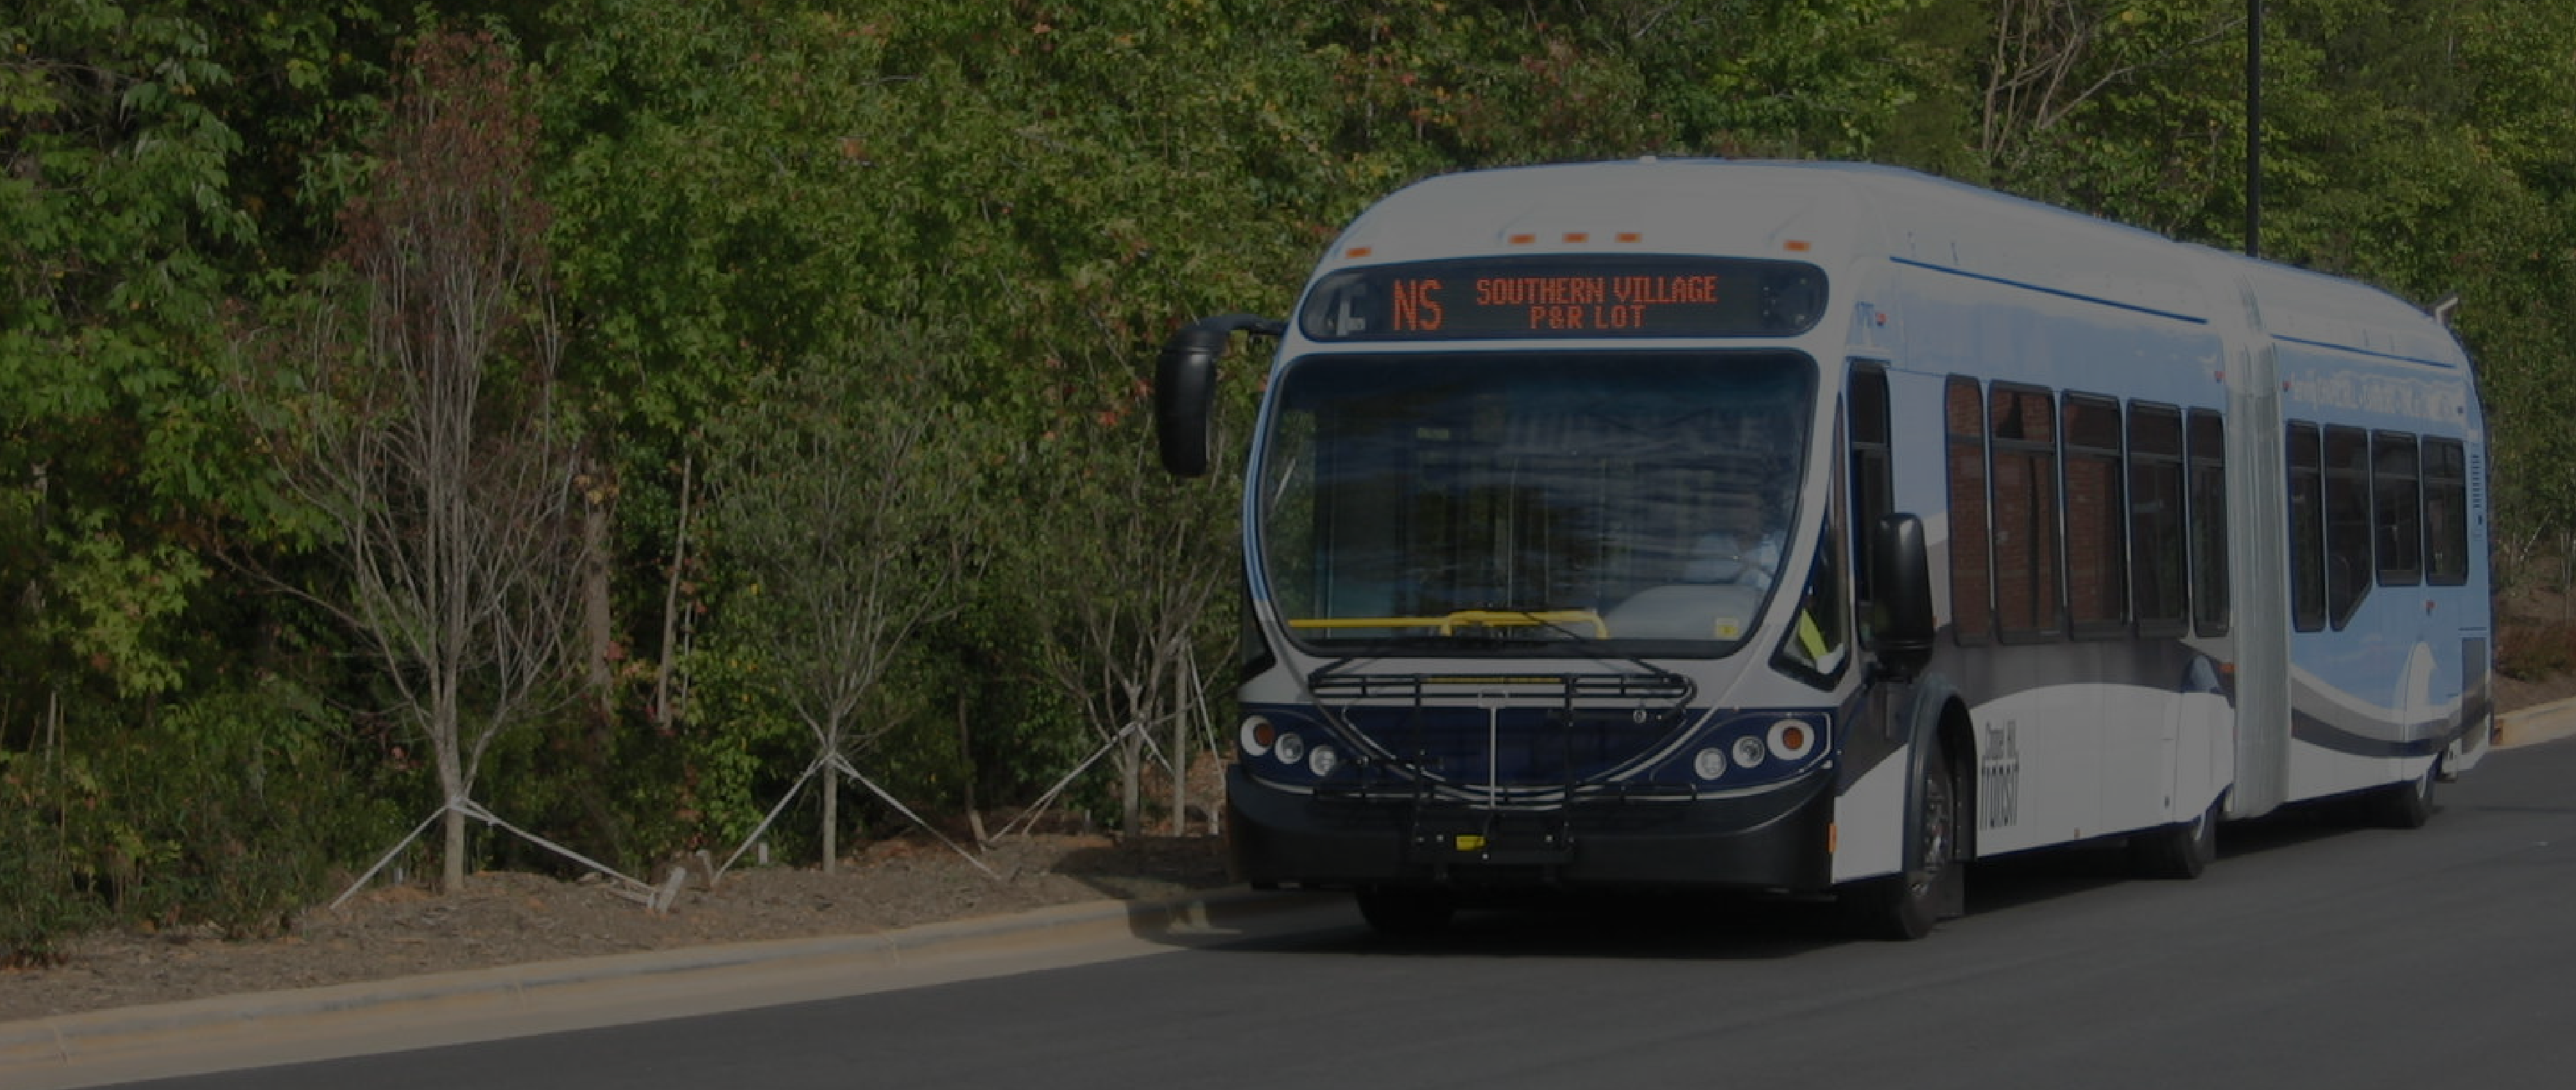 An articulated Chapel Hill Transit bus parked on the side of the road.